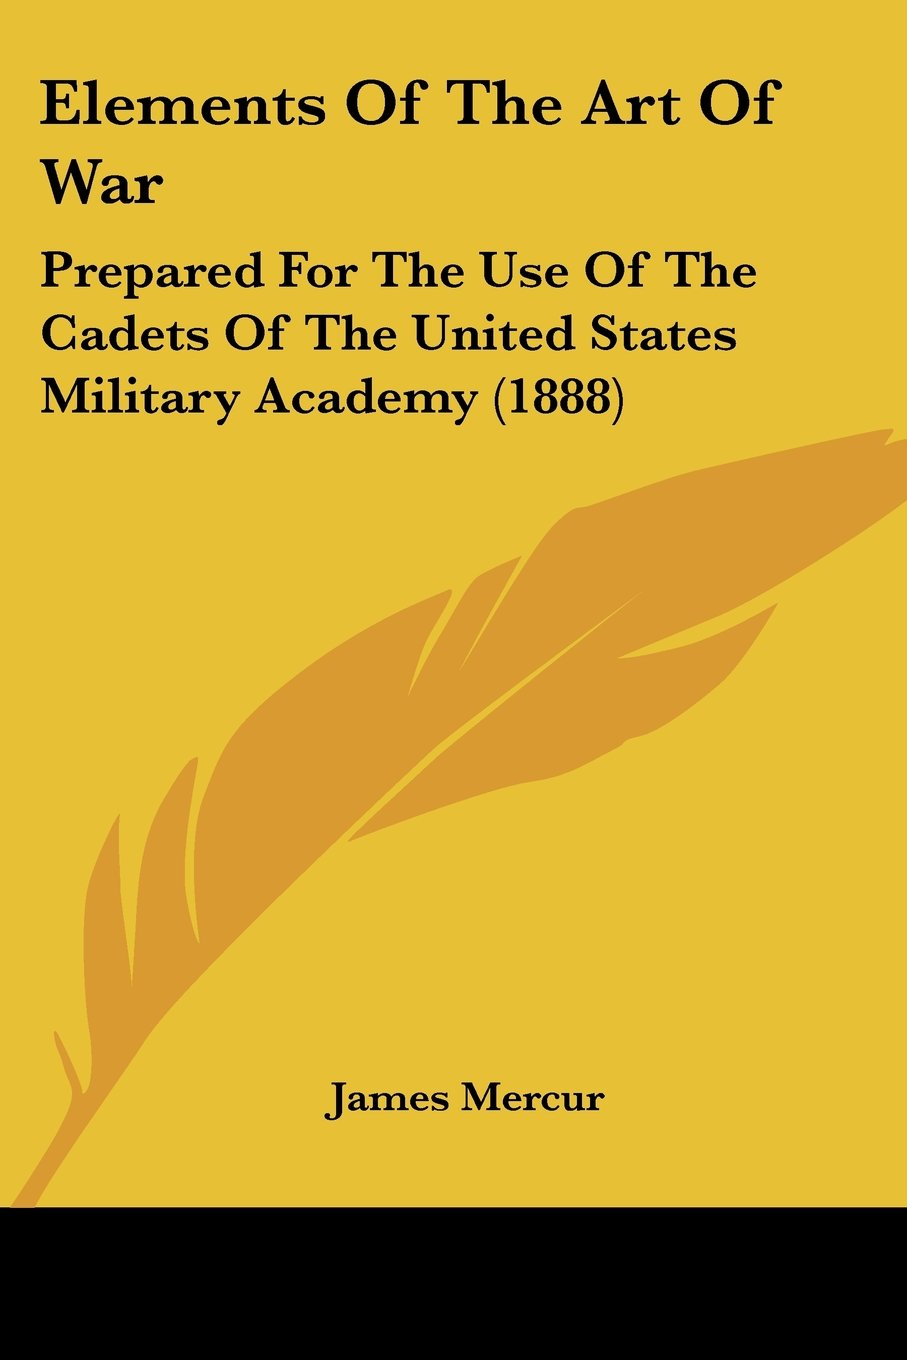 Elements Of The Art Of War: Prepared For The Use Of The Cadets Of The United States Military Academy (1888) pdf